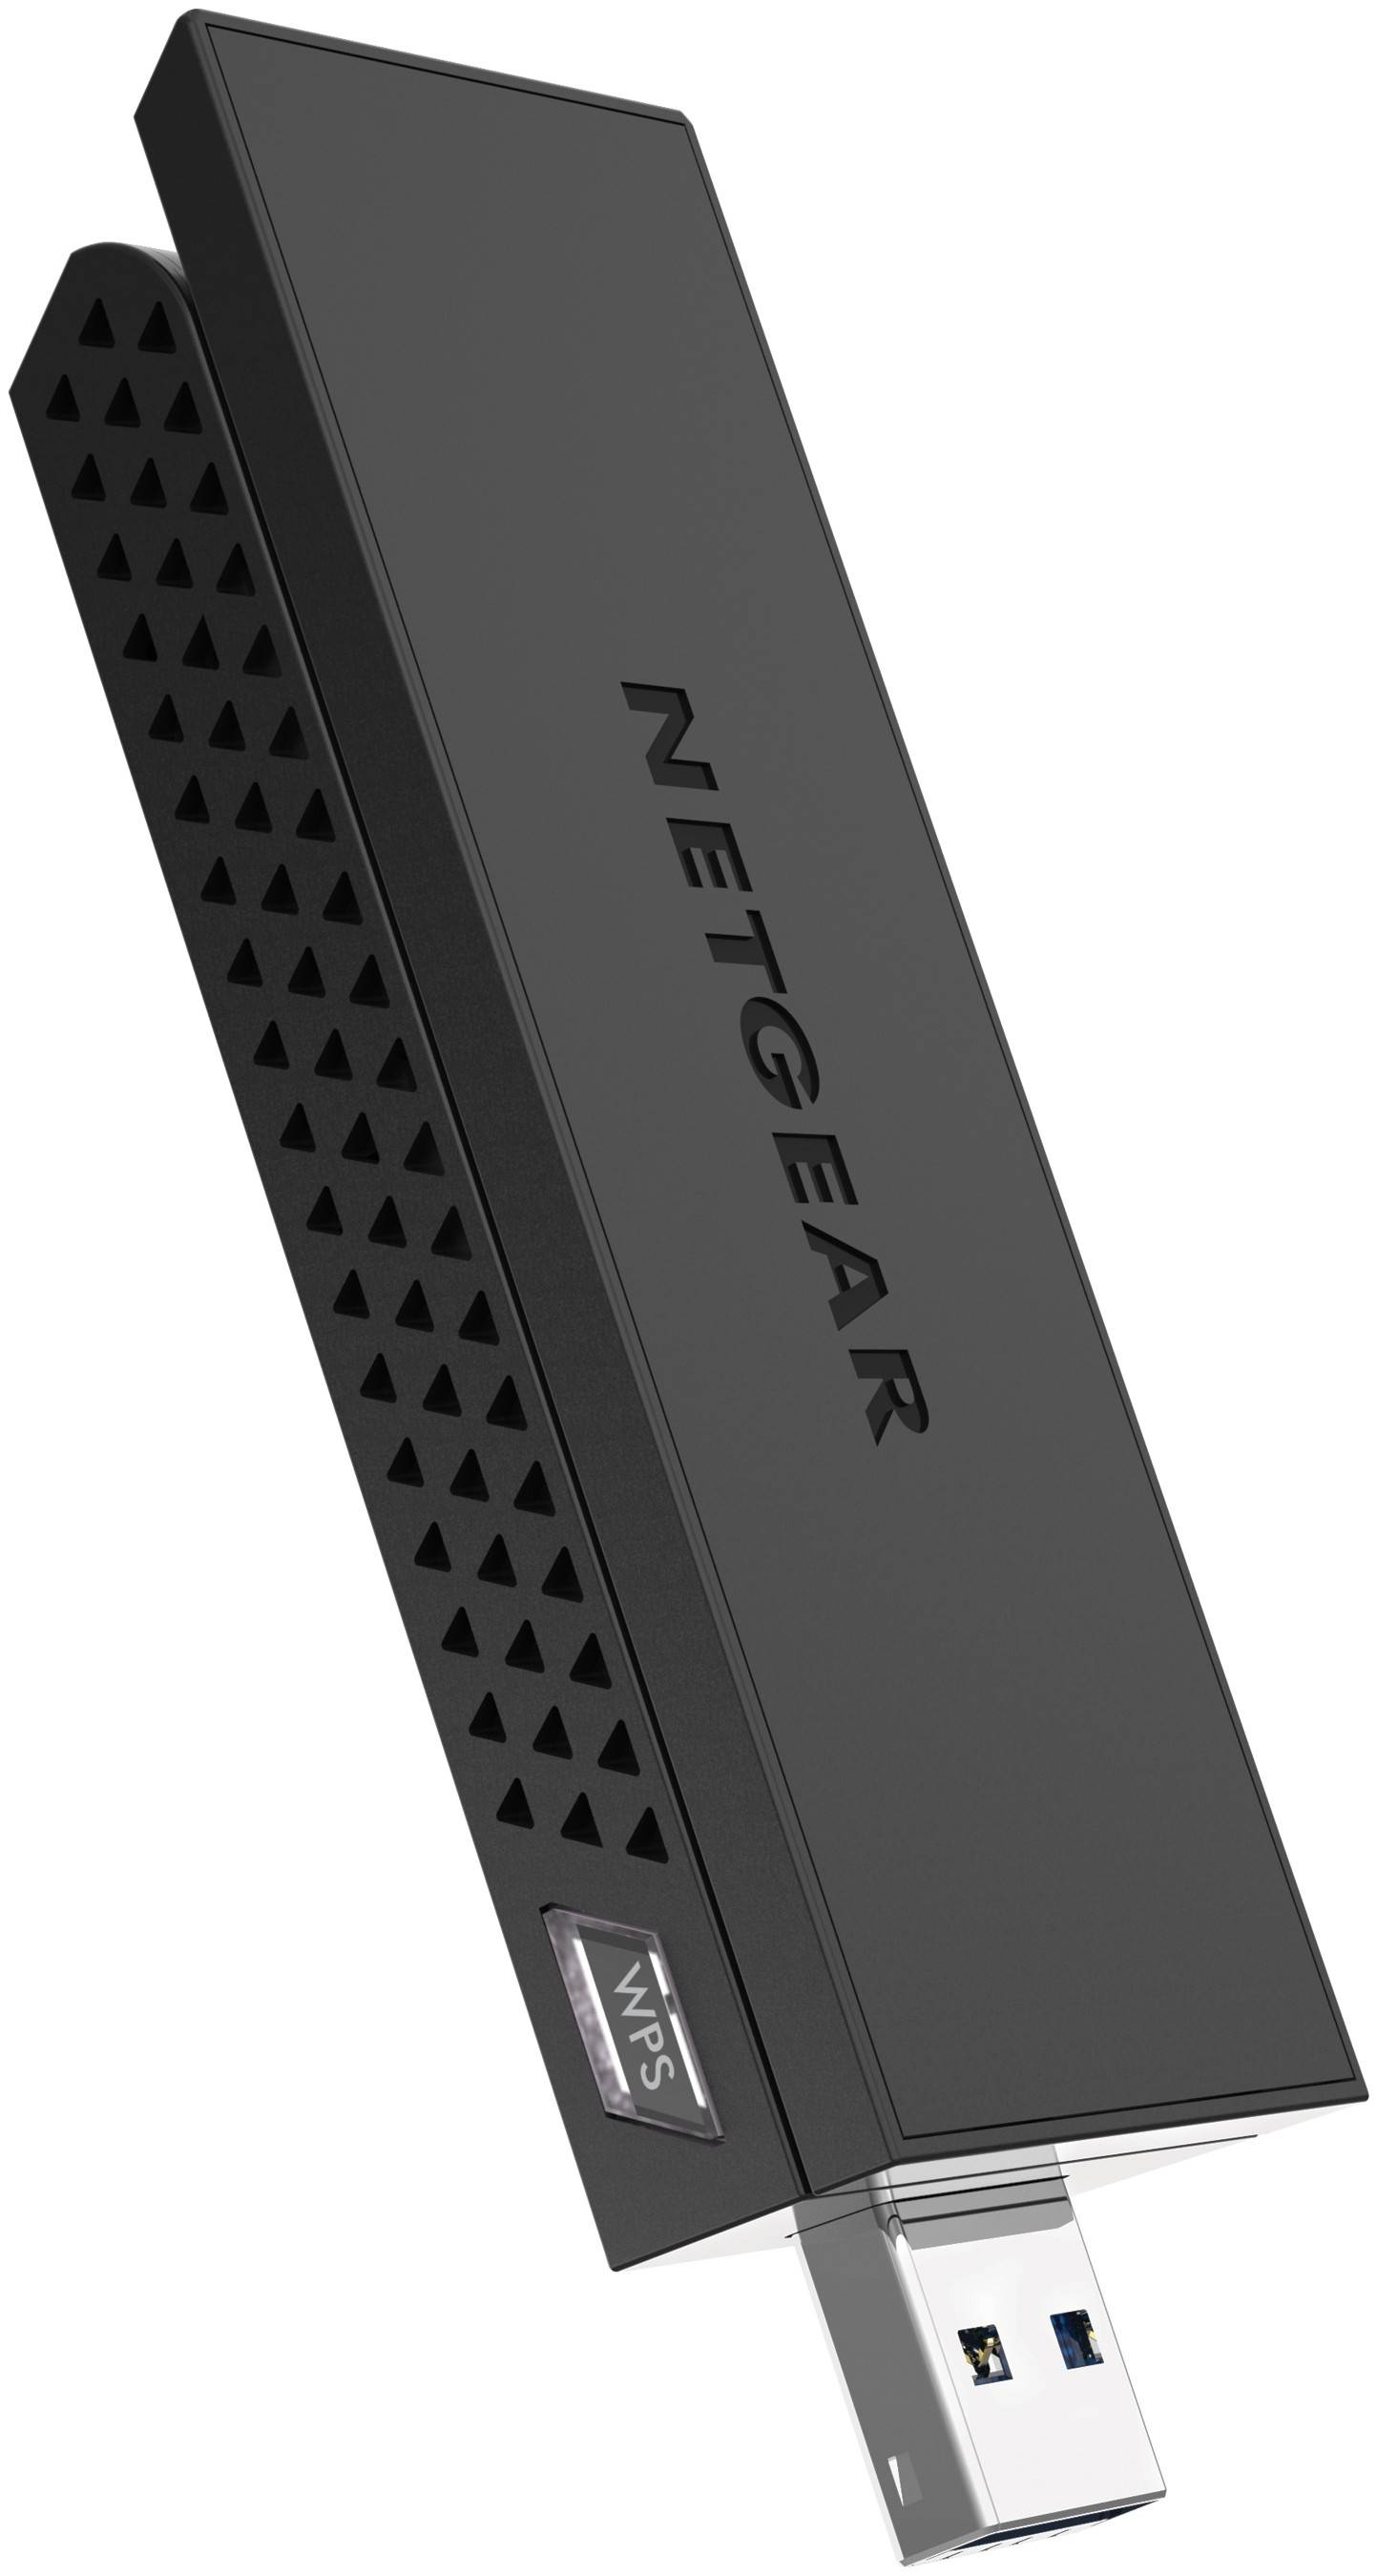 Netgear A6210 Dual Band WiFi USB 3.0 adapteri